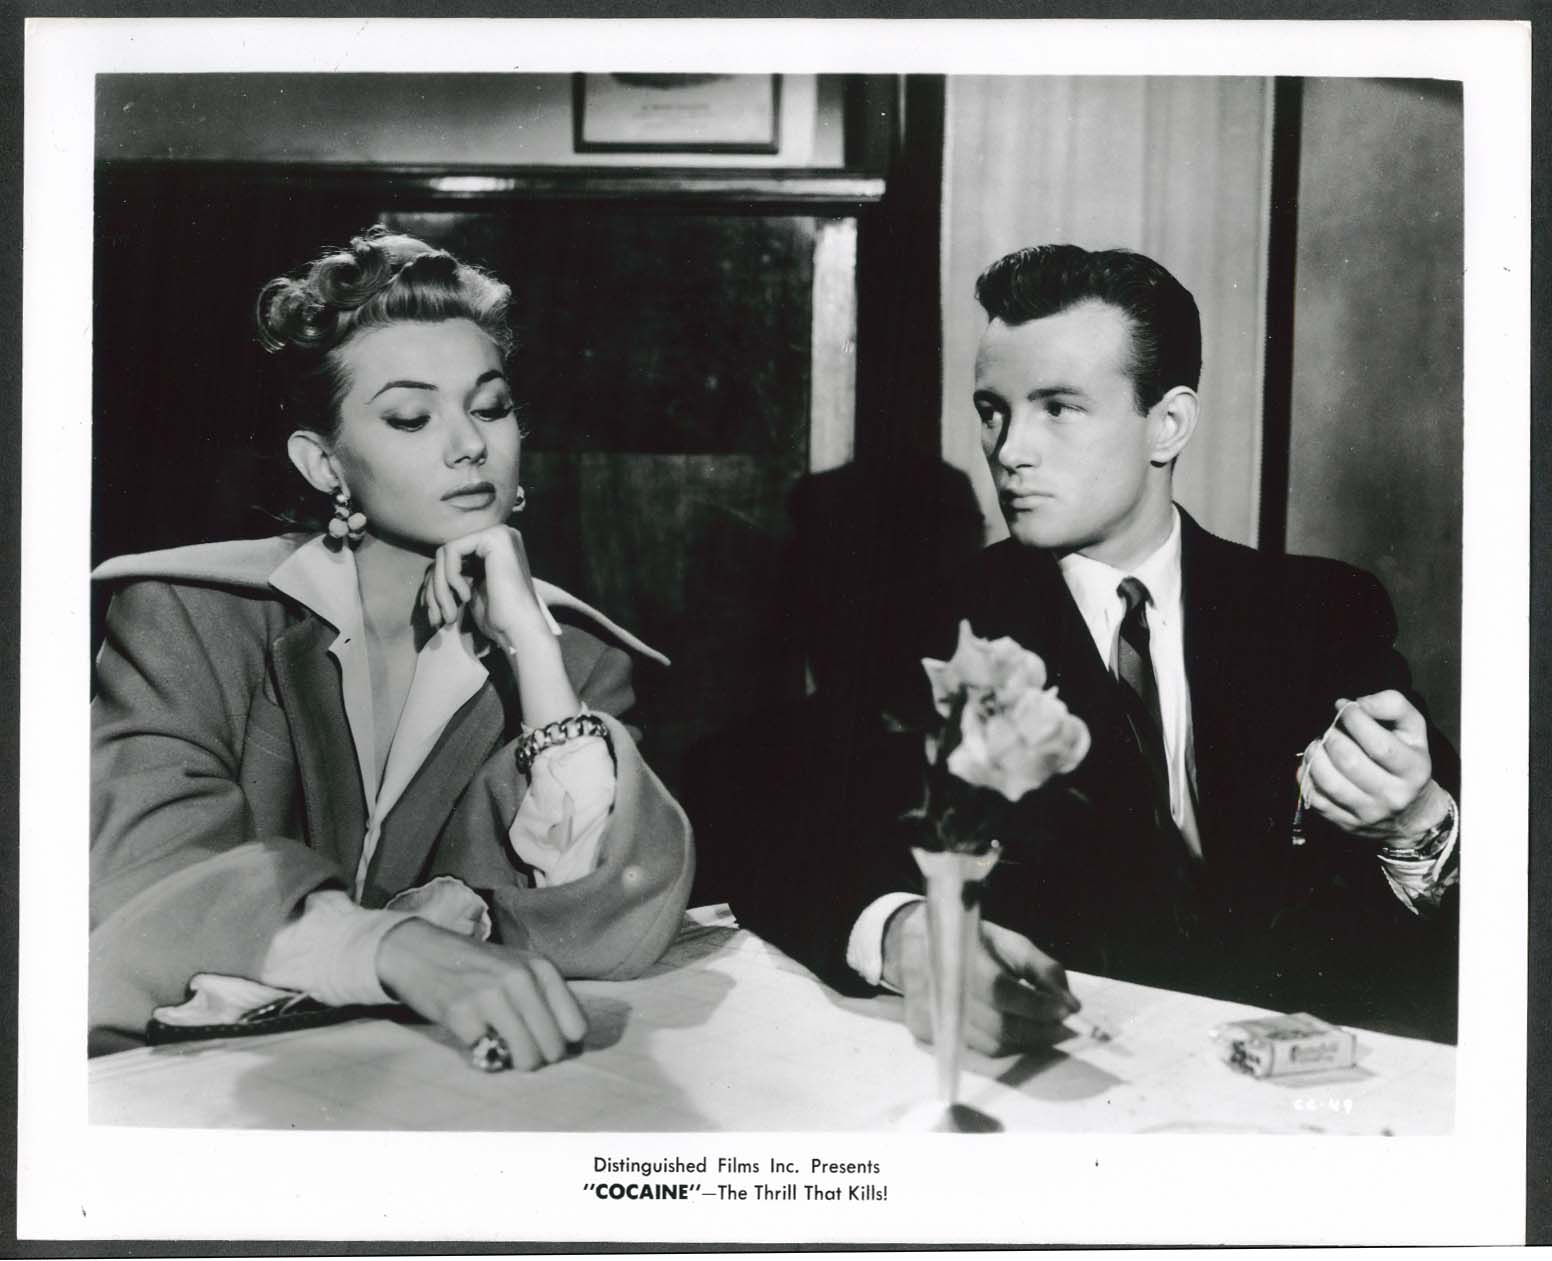 Image for Cocaine The Thrill That Kills Distinguished Films Inc 8x10 photograph 1940s